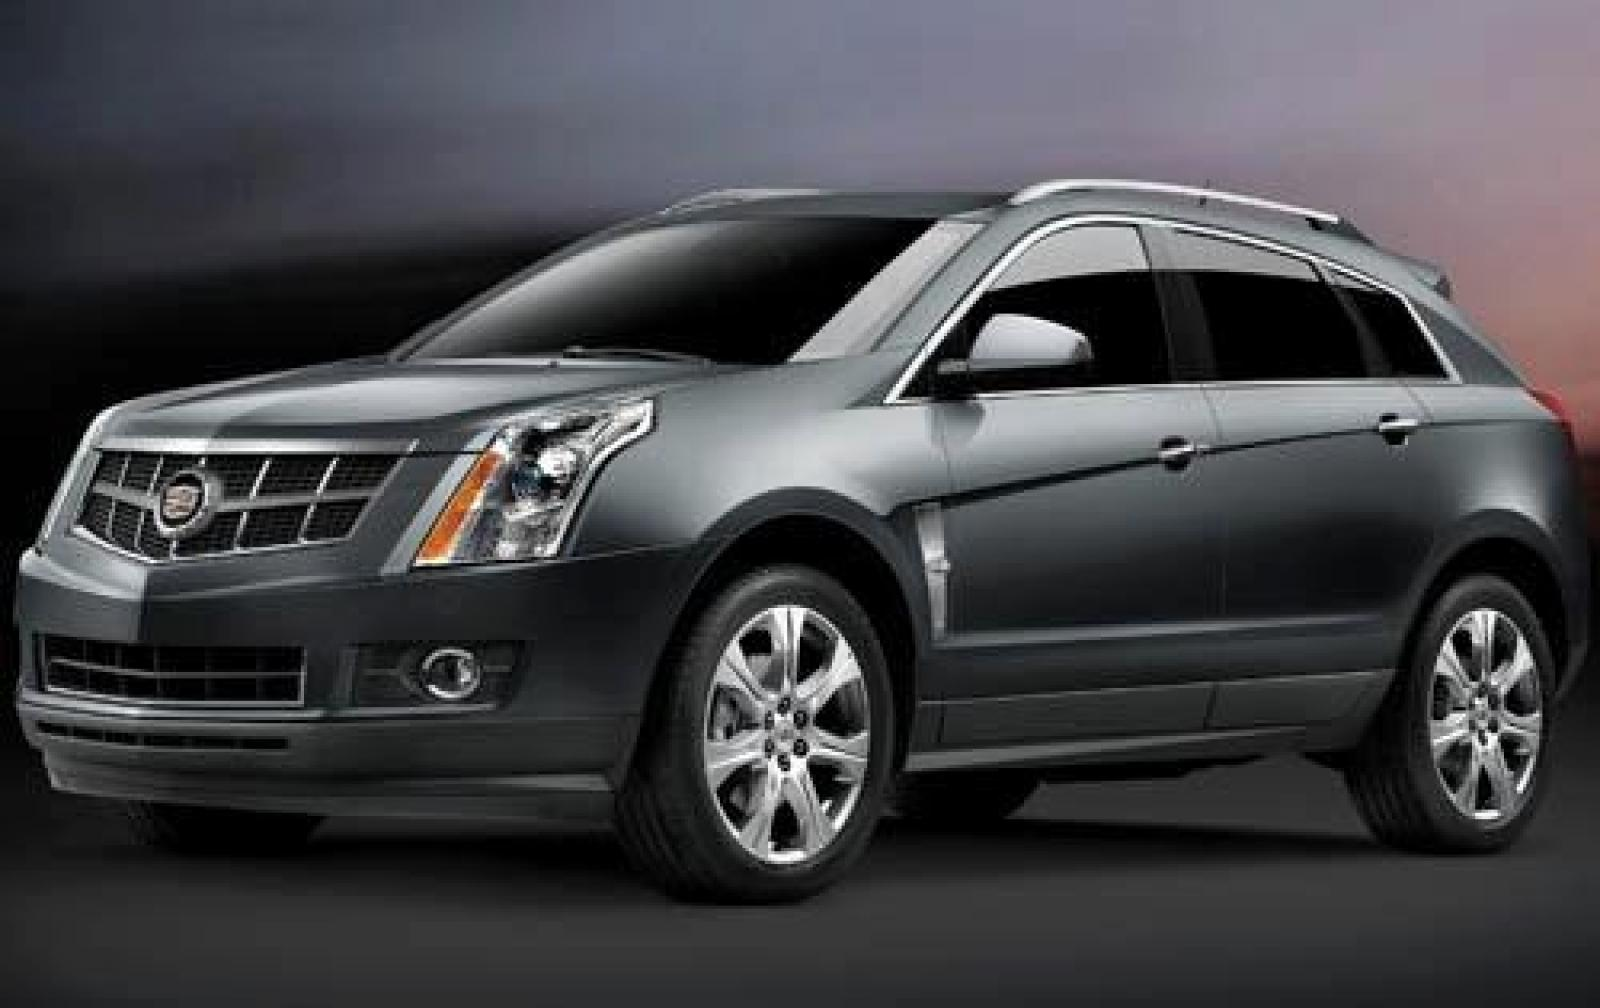 2011 cadillac srx information and photos zombiedrive. Black Bedroom Furniture Sets. Home Design Ideas